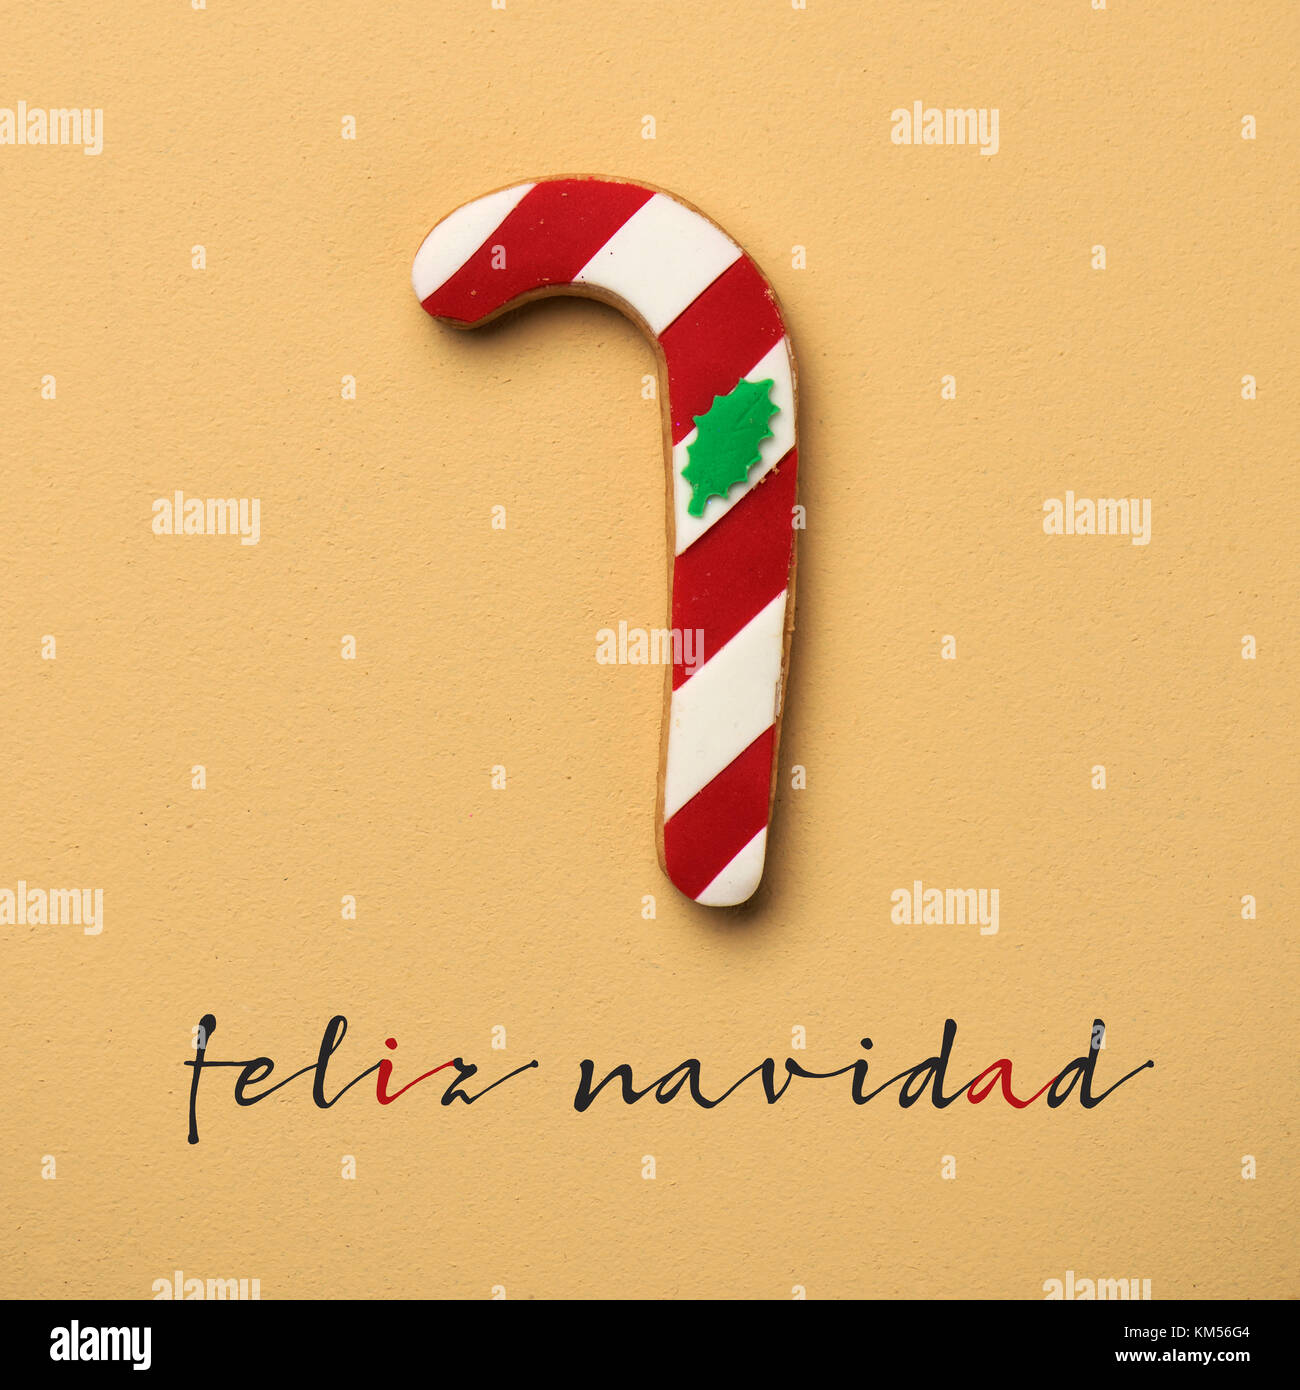 a coloroful cookie in the shape of a candy cane and the text feliz navidad, merry christmas in spanish, on an orange - Stock Image